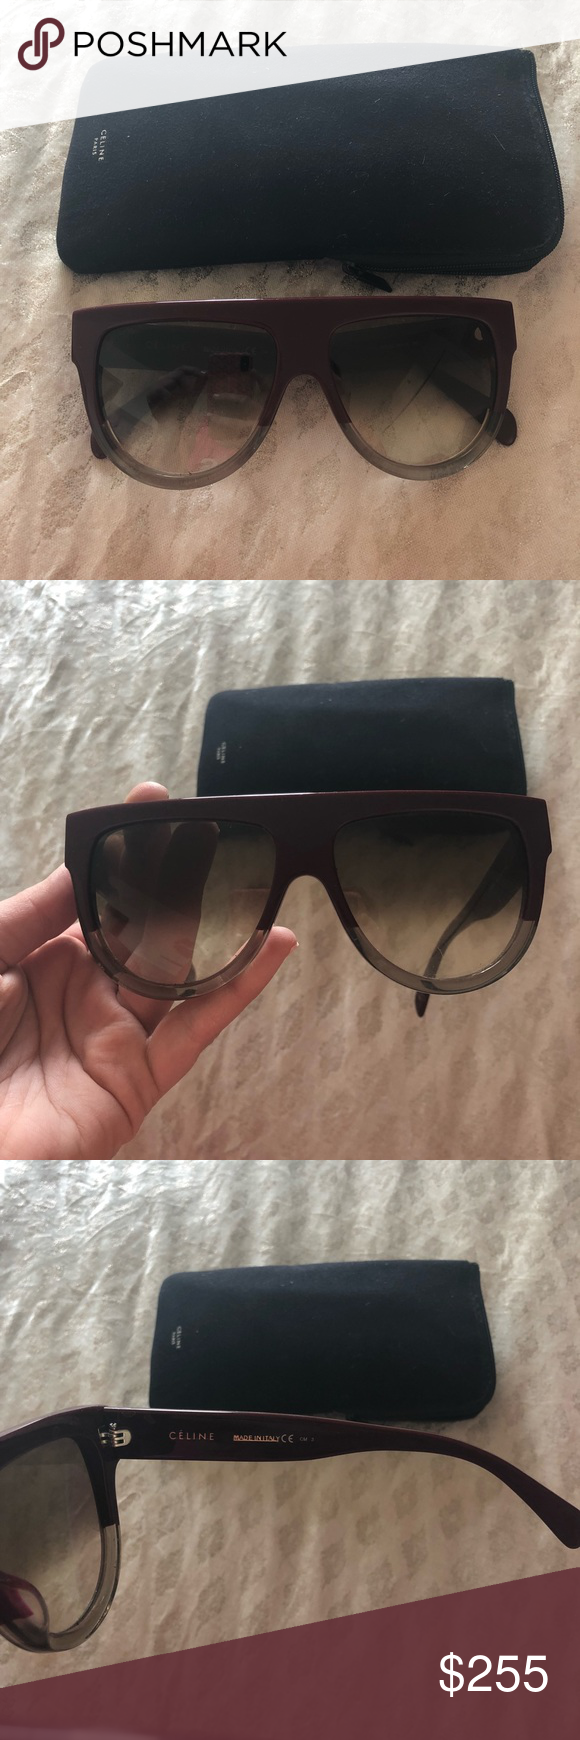 cf8c9d56b8 Celine Flat Top Sunglasses Authentic Celine sunglasses in the flat top  shape. Dark red tint  grey combo. Great condition minus a few microscopic  scratches ...